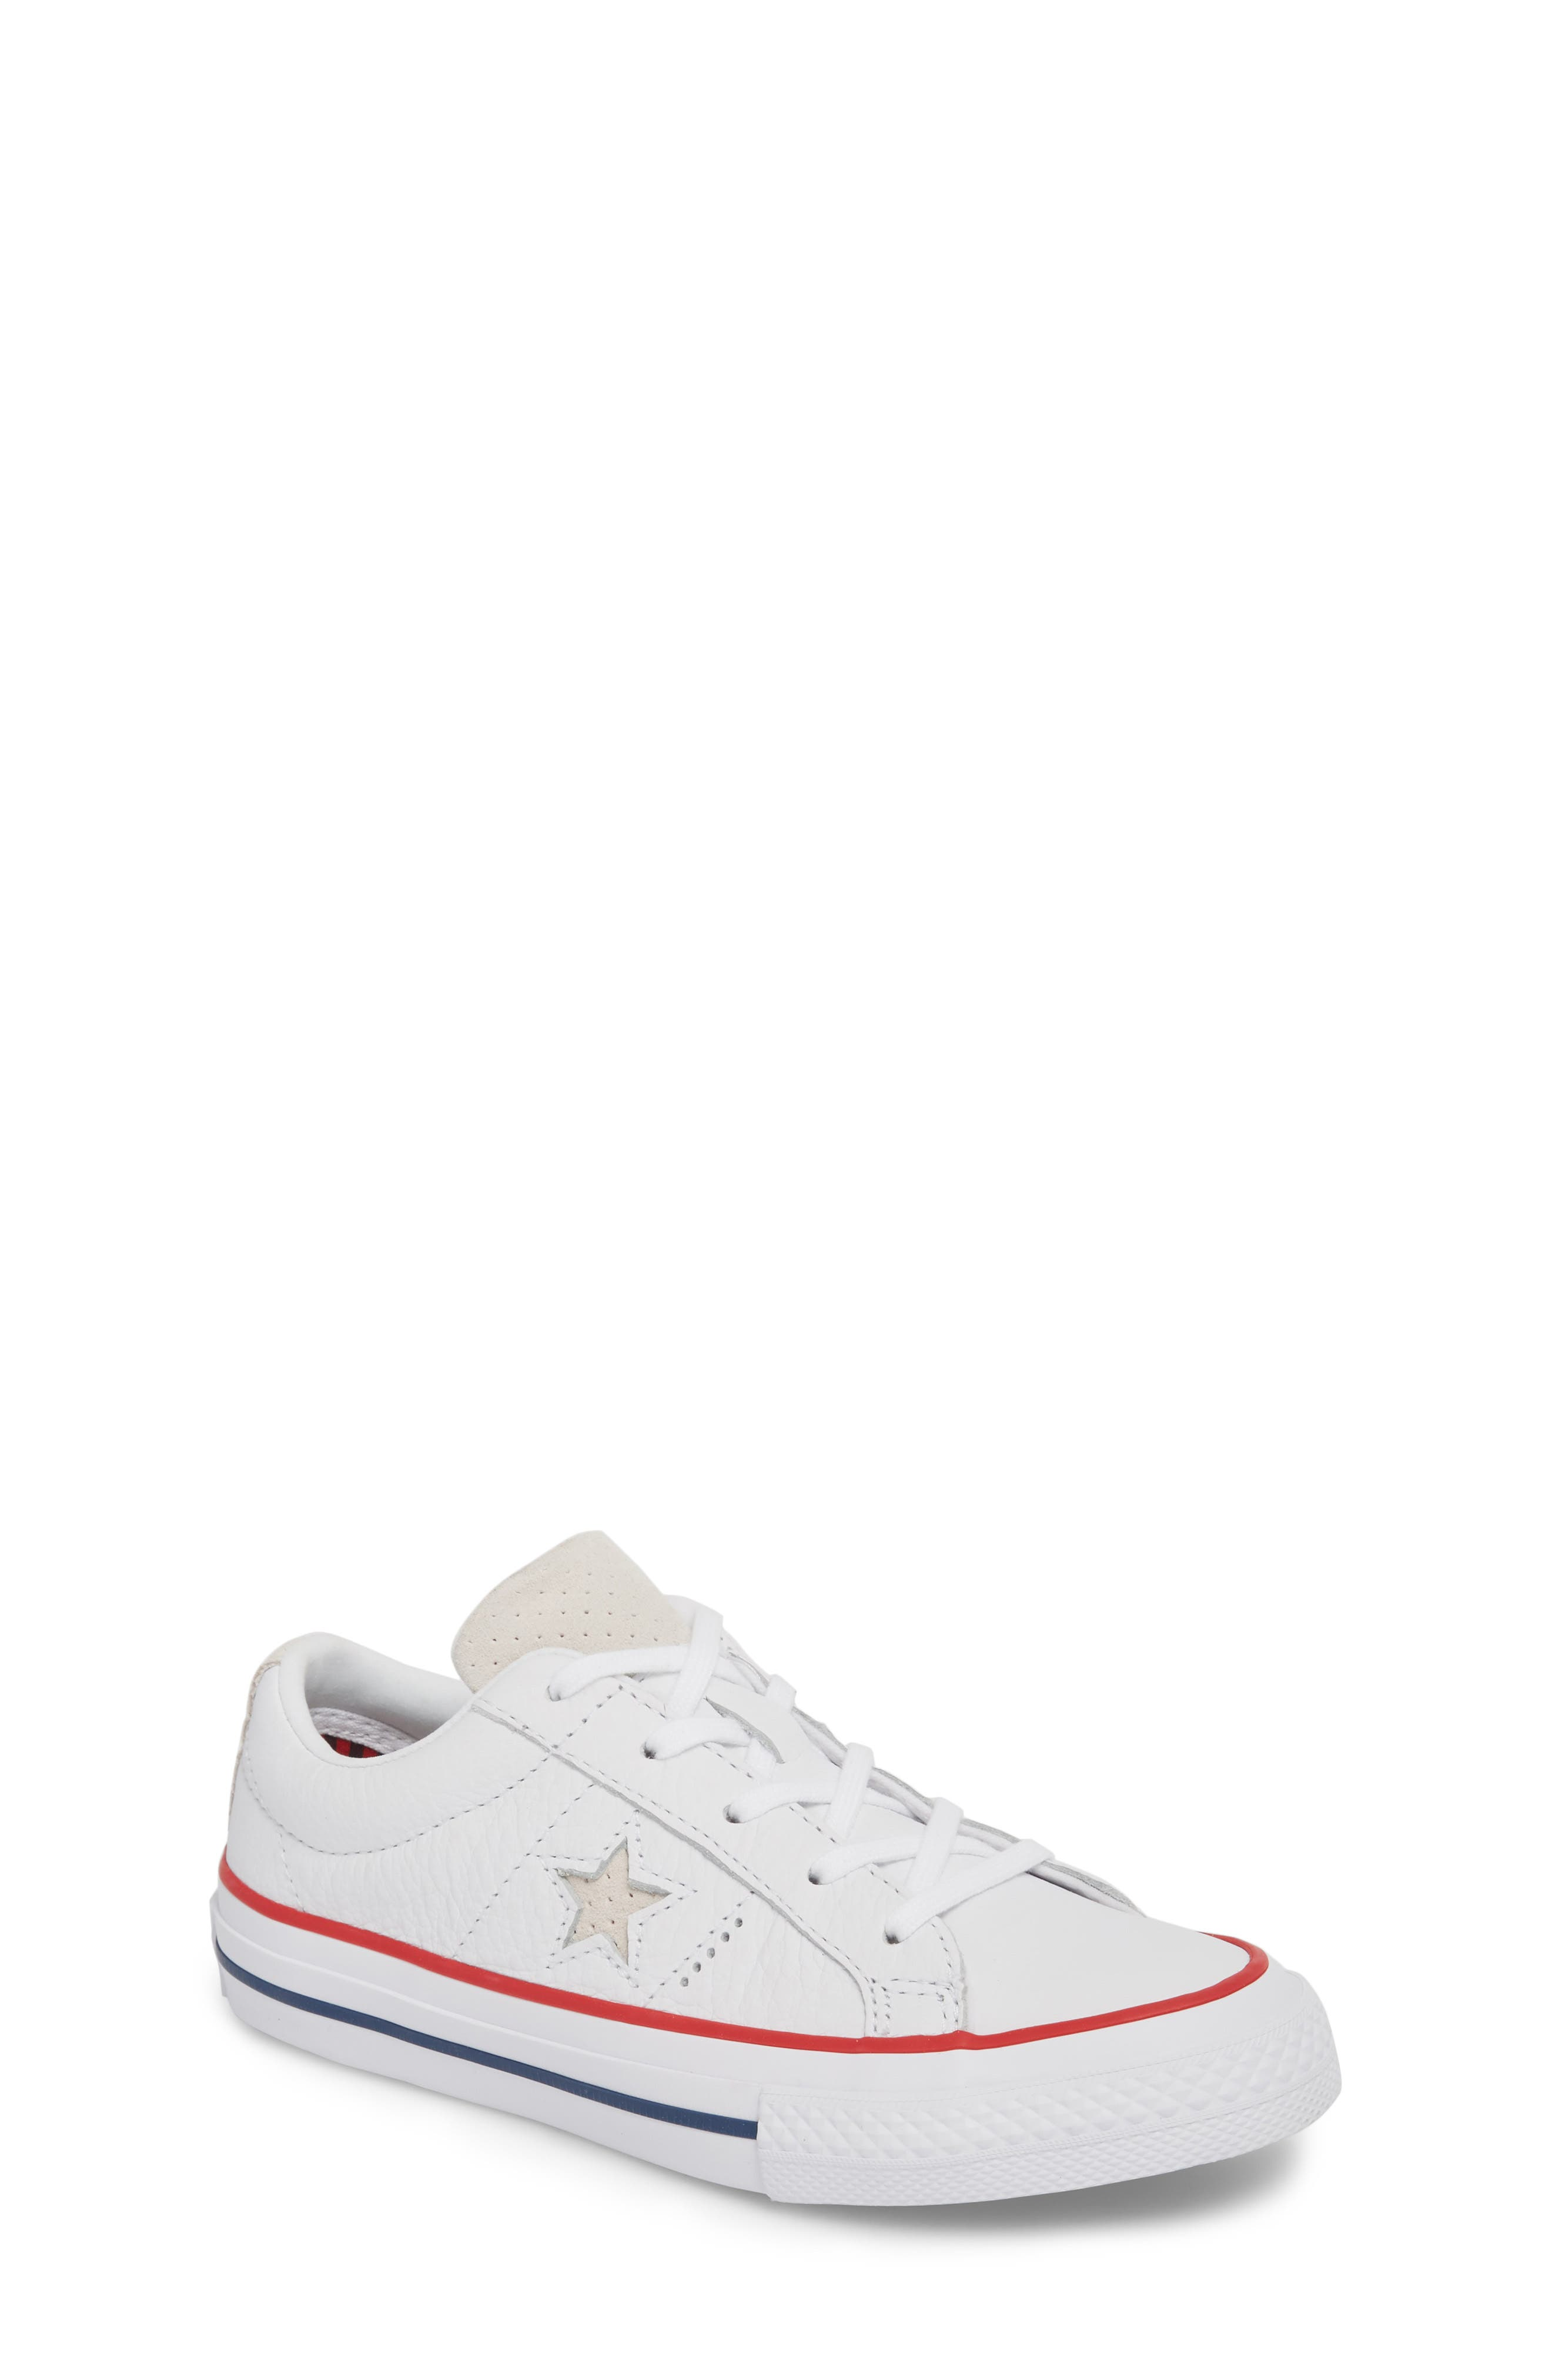 Chuck Taylor<sup>®</sup> All Star<sup>®</sup> New Heritage Oxford Sneaker,                         Main,                         color, 102